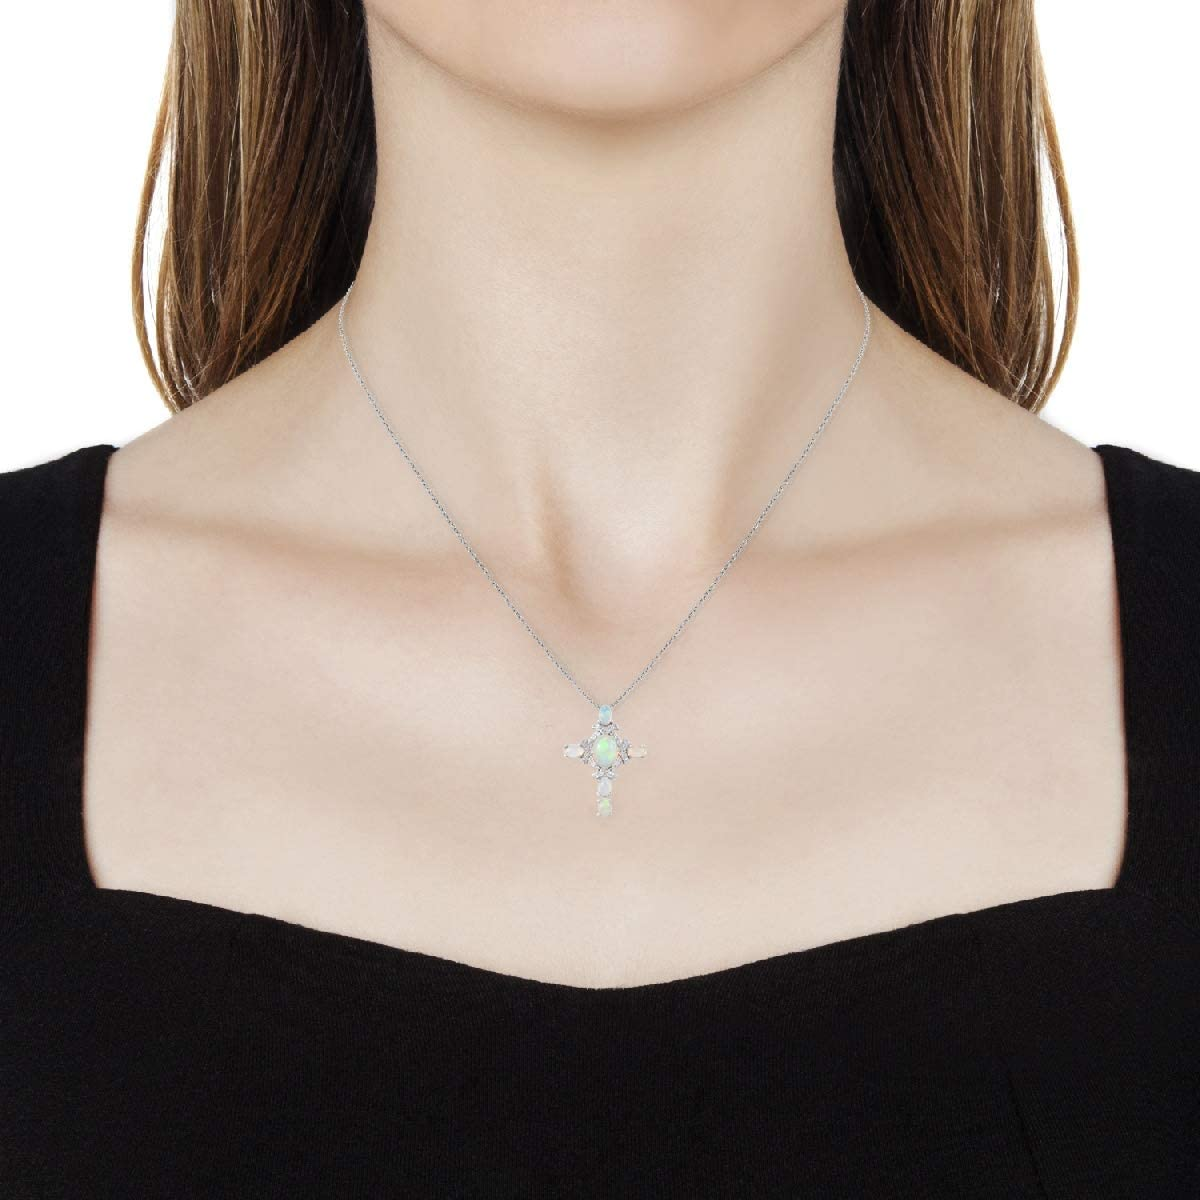 Welo Opal Cubic Zirconia CZ Pendant Necklace 20 Platinum Plated 925 Sterling Silver Jewelry for Women